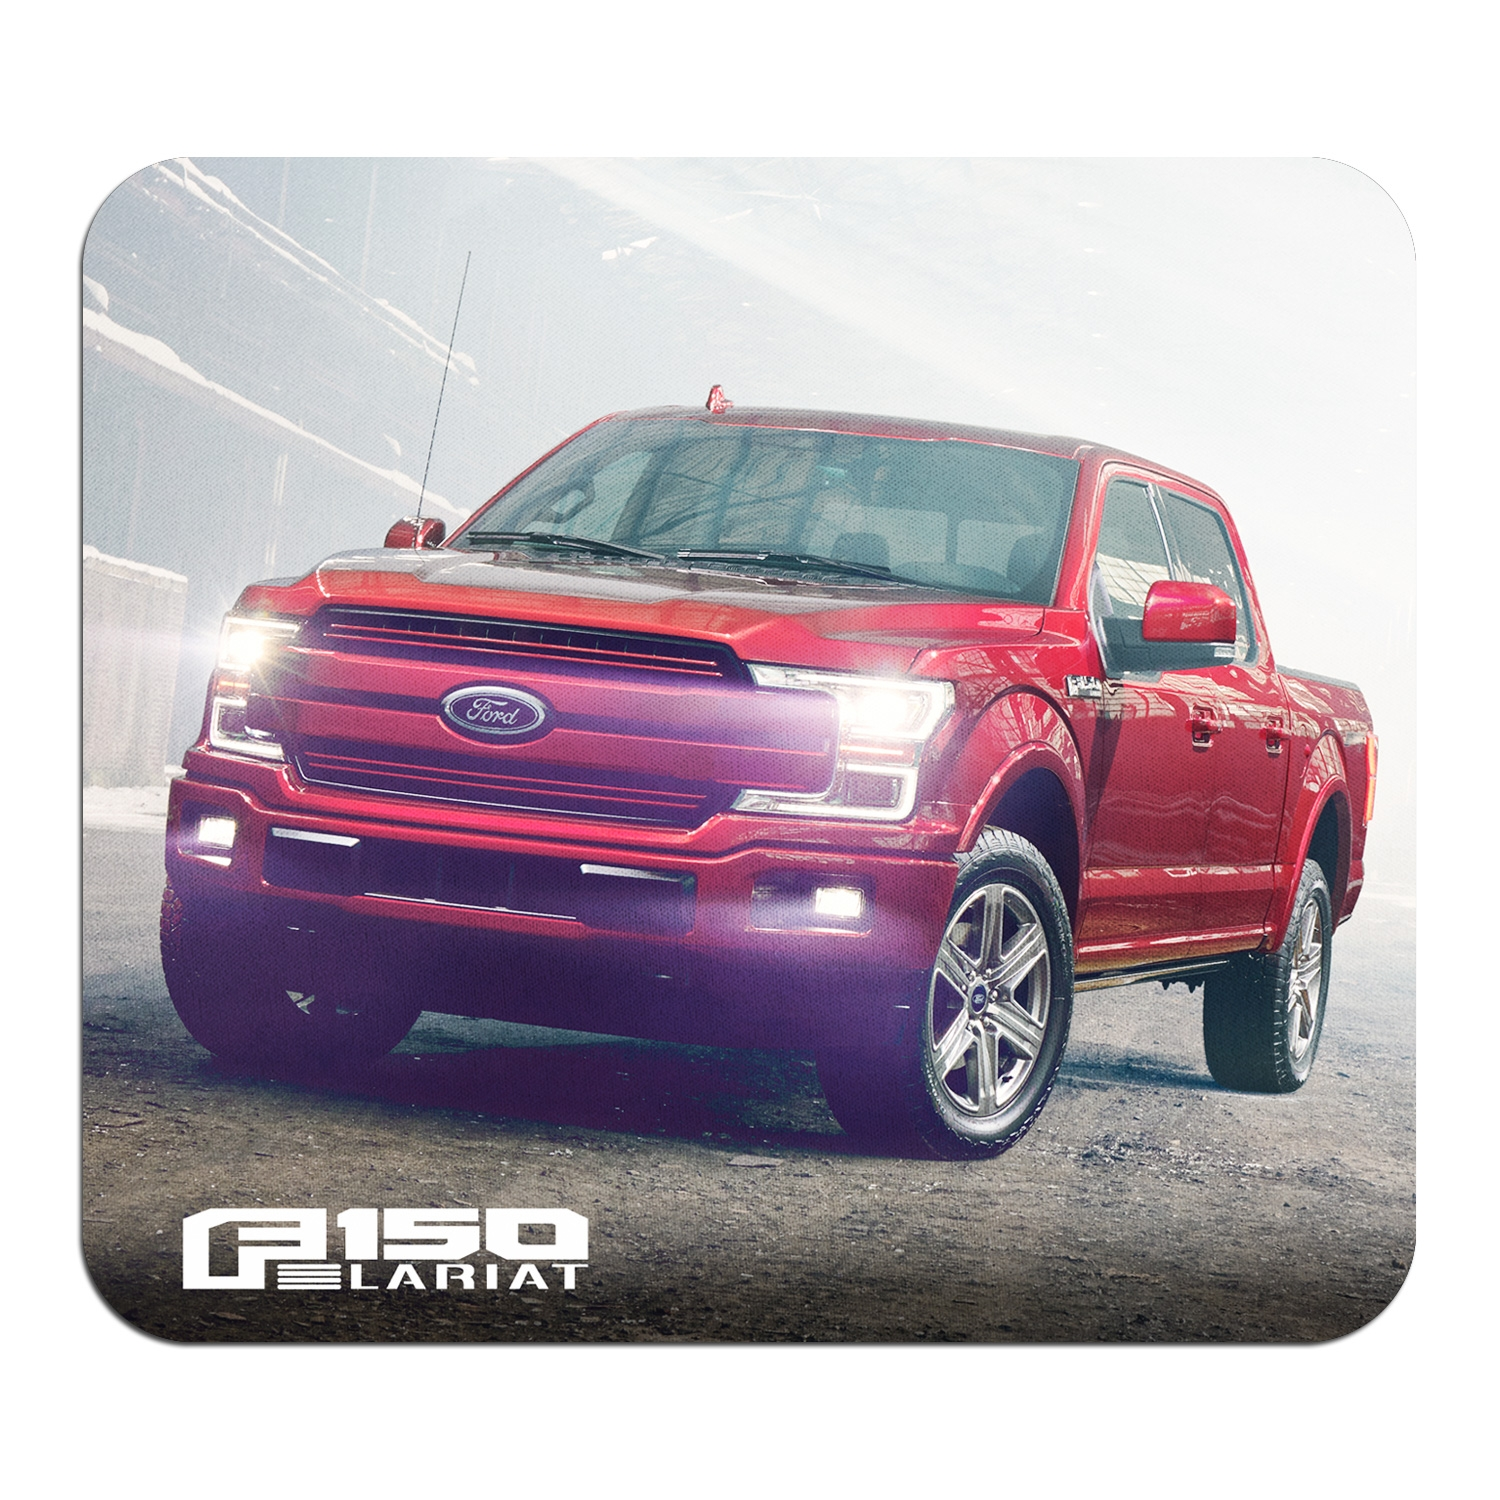 Ford F-150 Lariat Graphic PC Mouse Pad